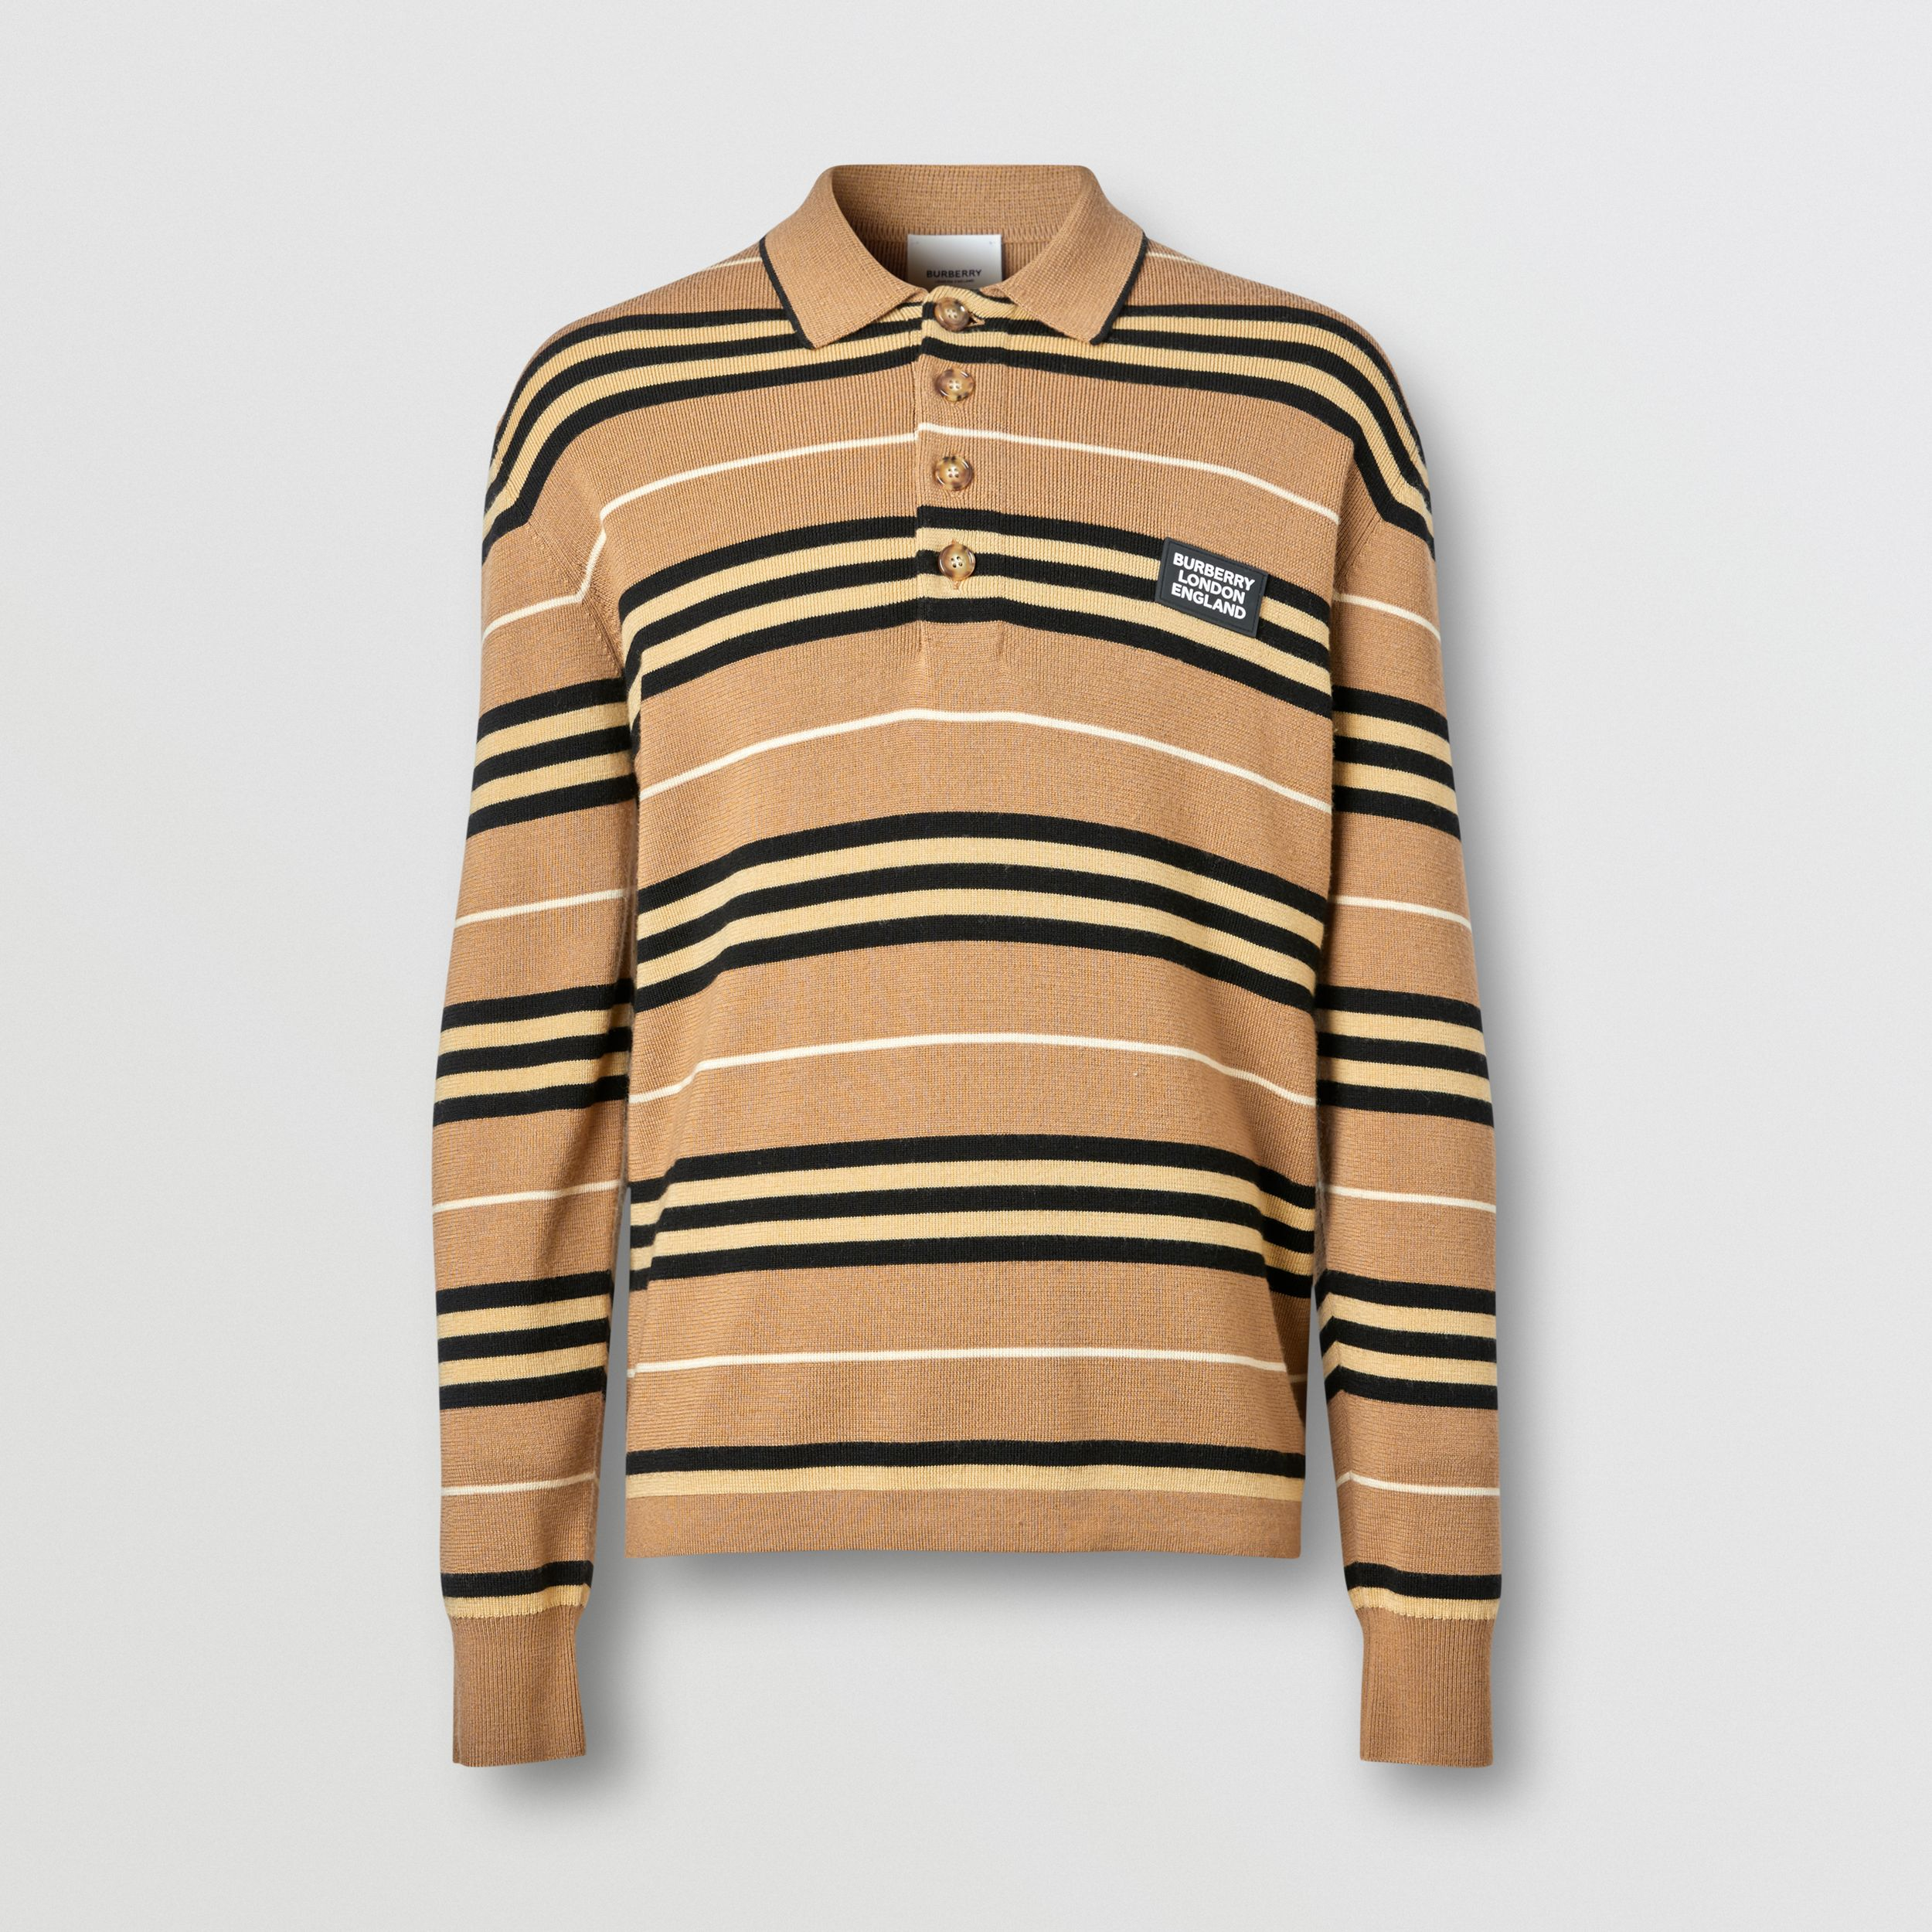 Long-sleeve Icon Stripe Merino Wool Polo Shirt in Warm Walnut - Men | Burberry United States - 4